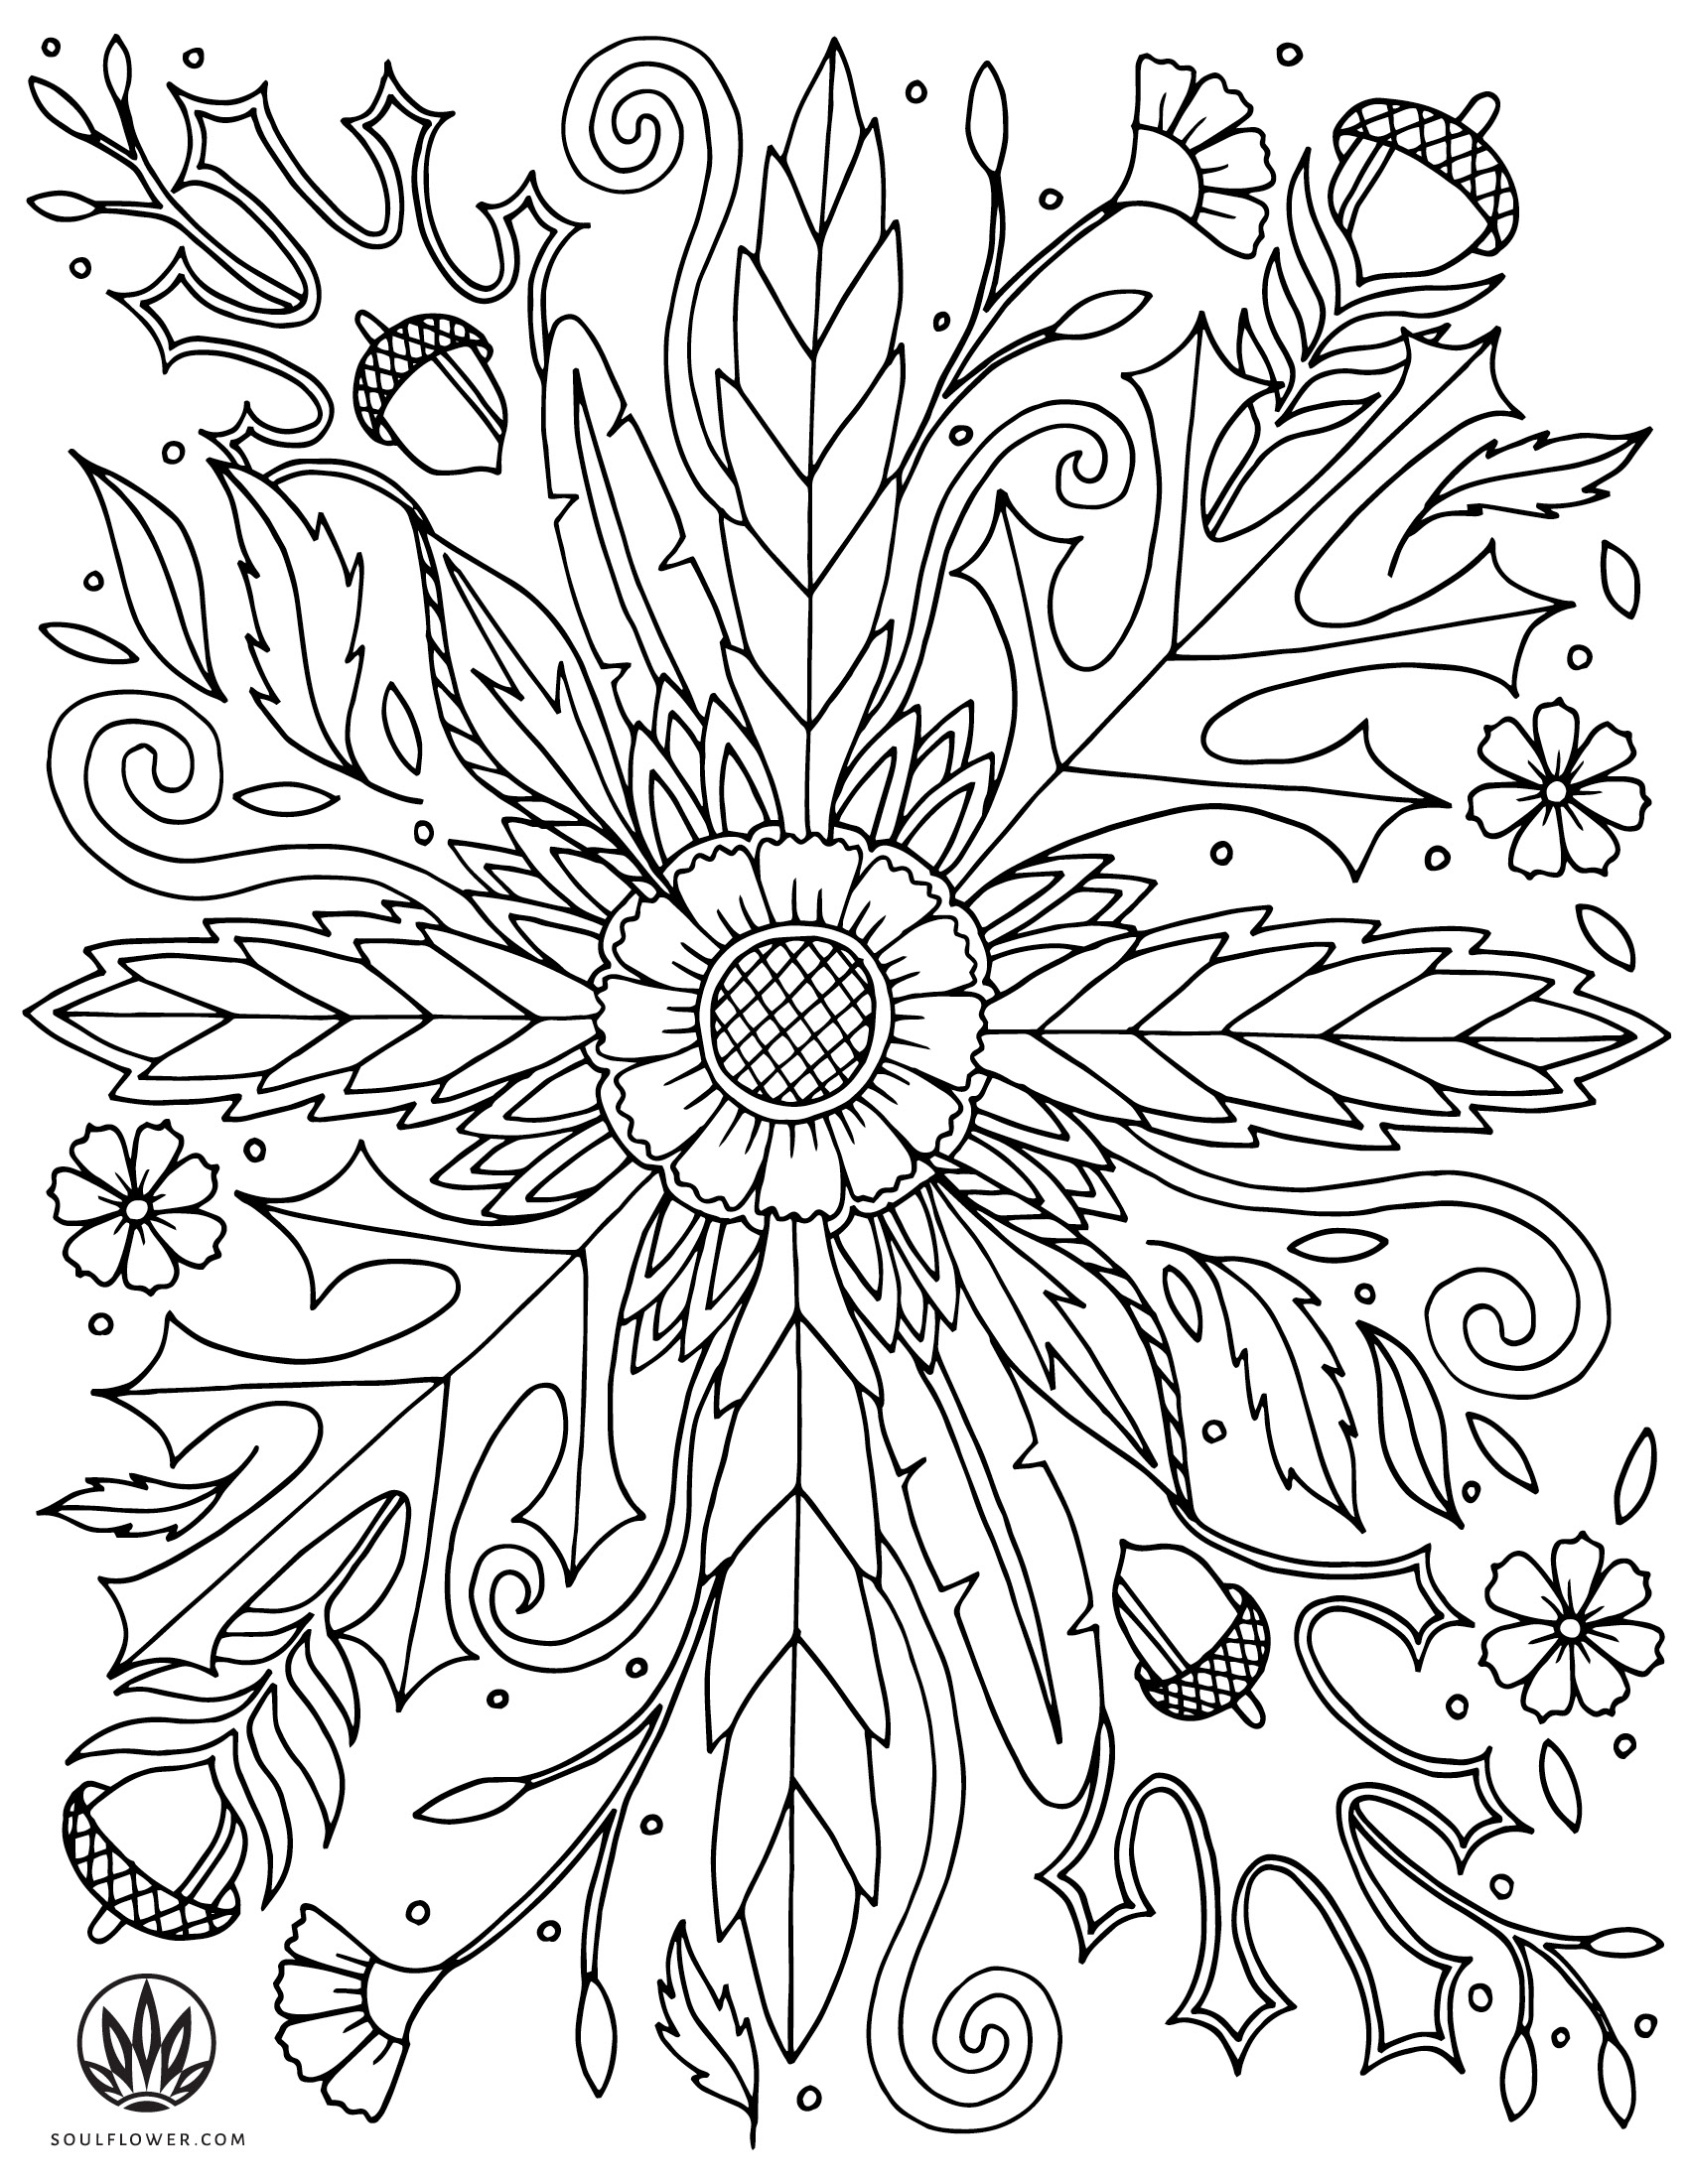 color sheets for fall fall leaves coloring pages 2016 fall for color sheets